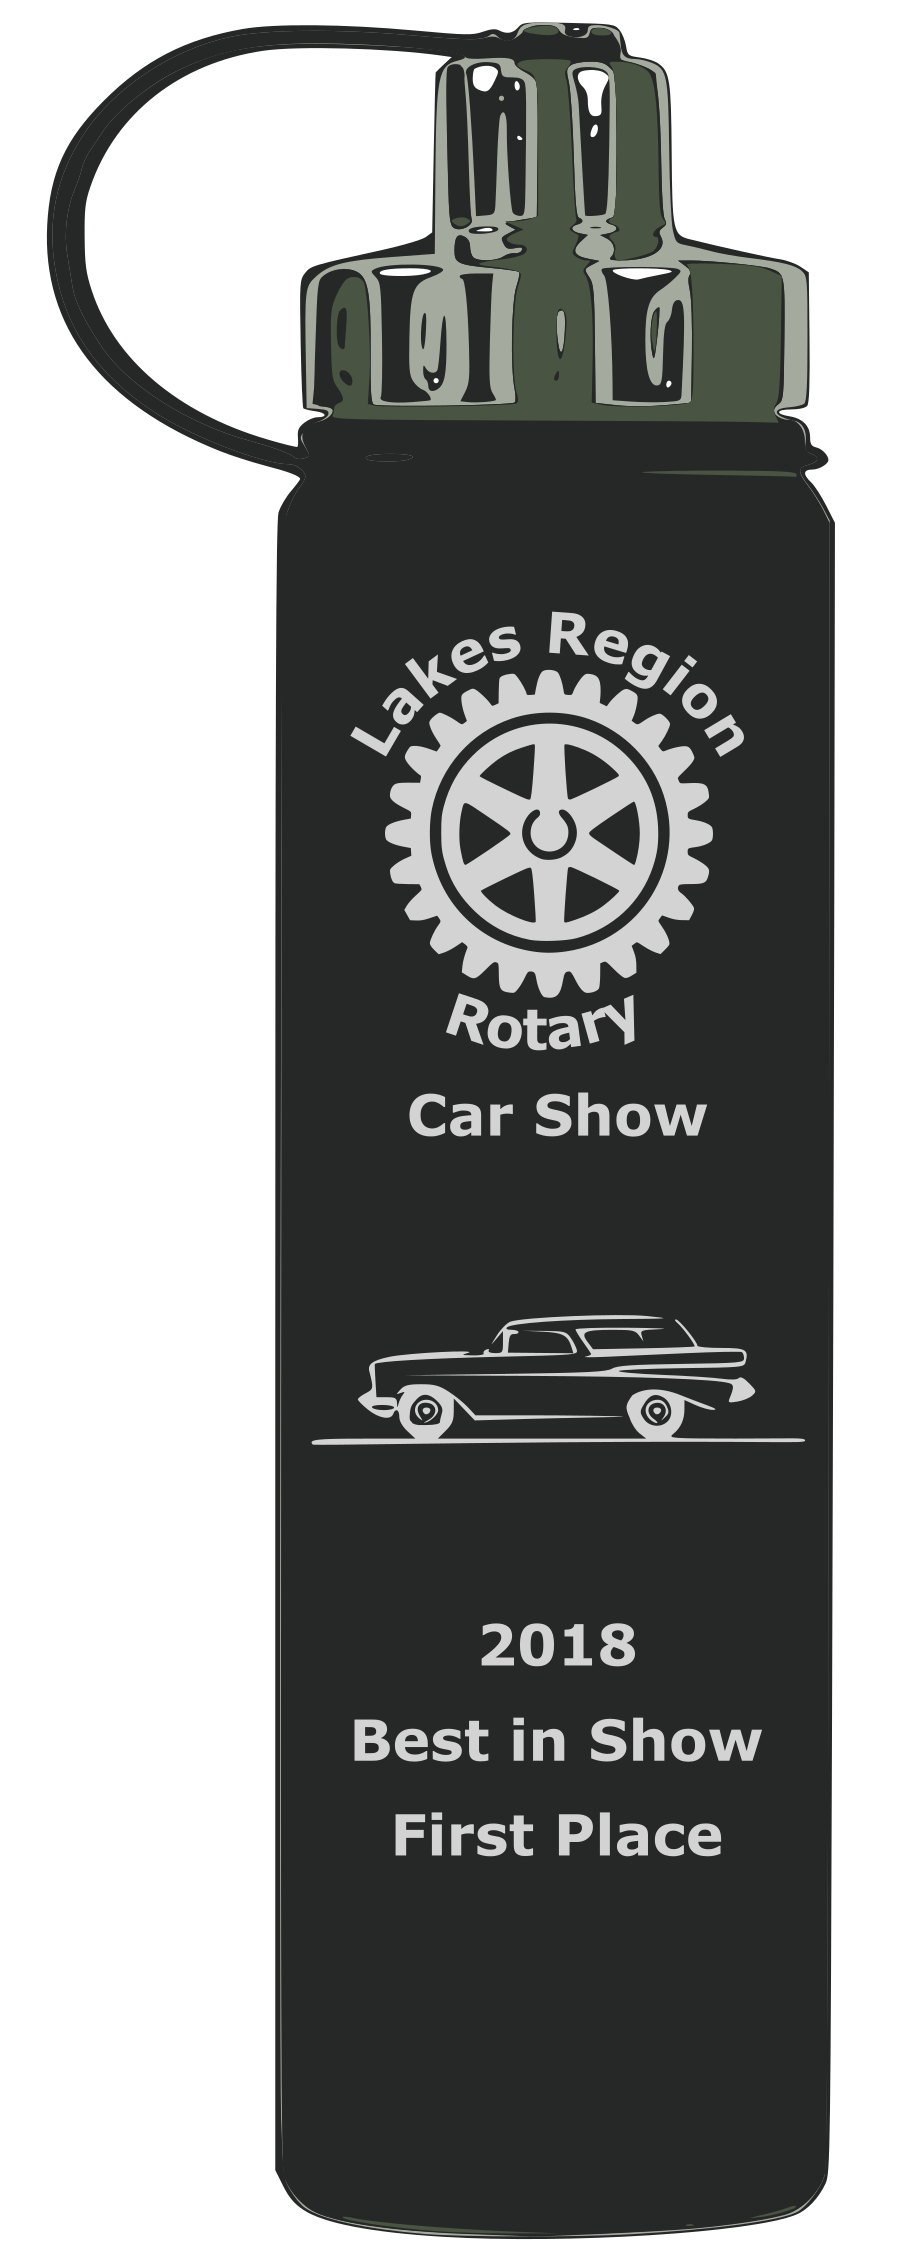 Lakes Region Rotary - Car show categories